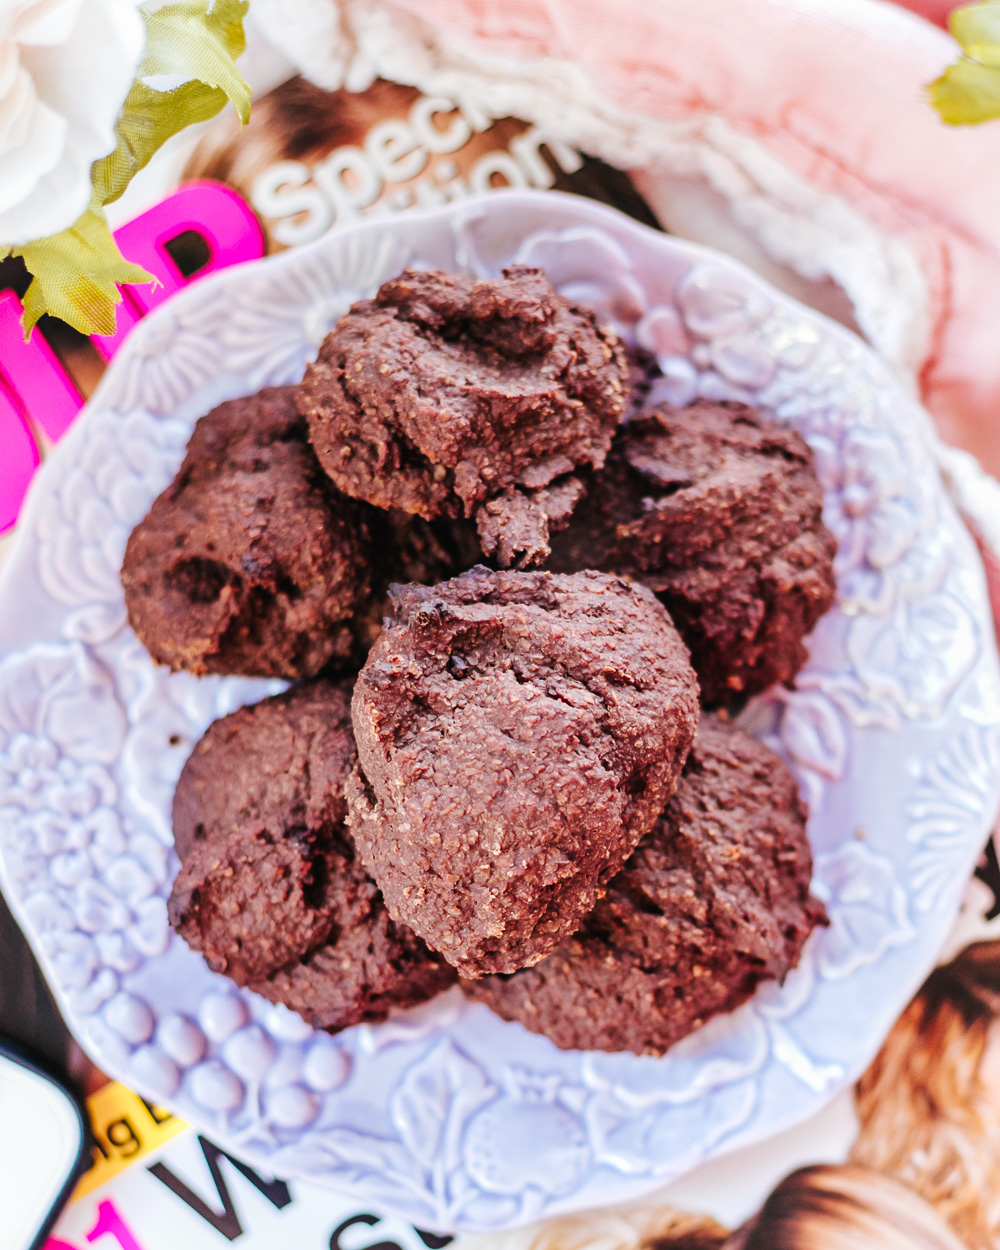 The Healthy Low Calorie Chocolate Bran Cookies are chewy, flavorful, nutritious, easy to make and completely guilt-free!